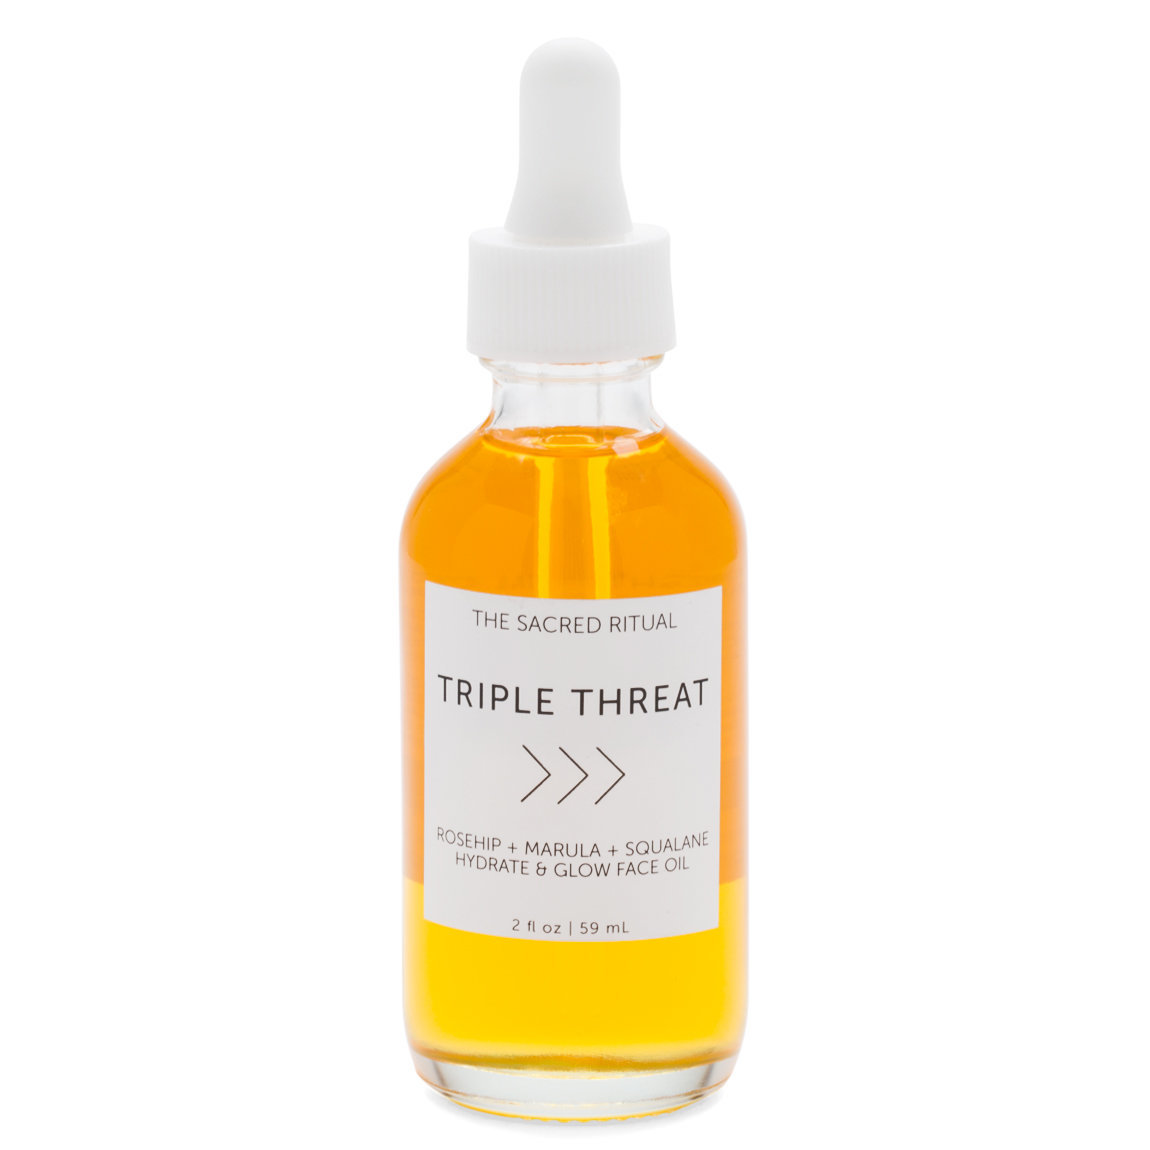 The Sacred Ritual Triple Threat Hydrate & Glow Face Oil alternative view 1 - product swatch.